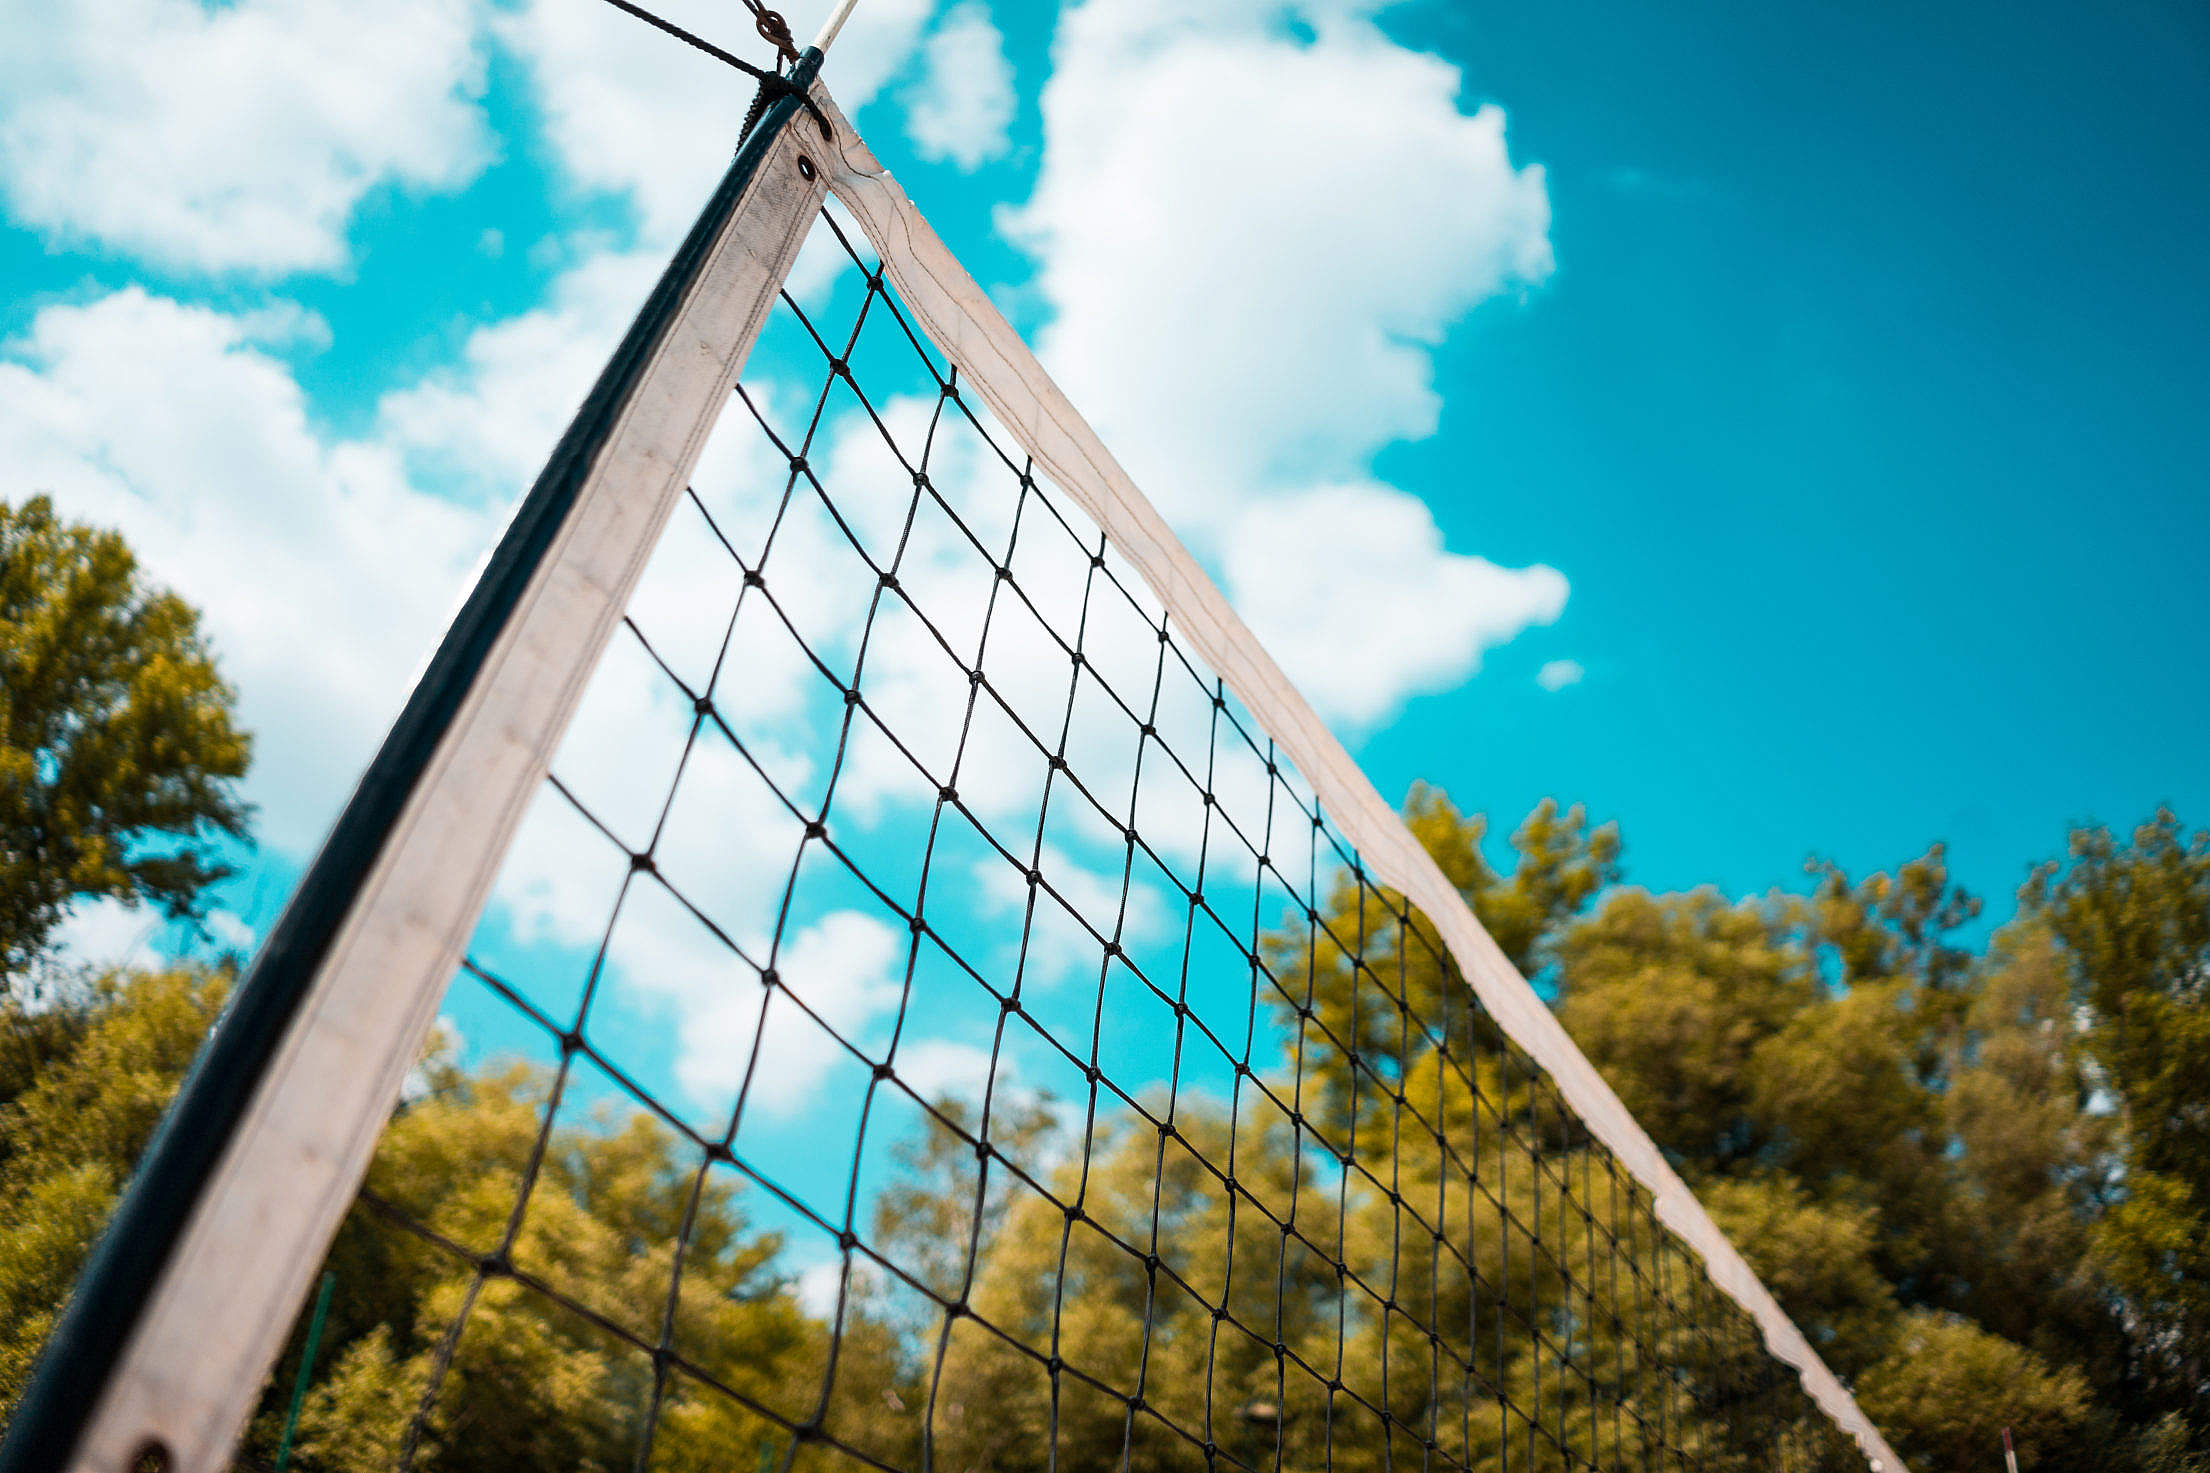 Volleyball Net Free Stock Photo